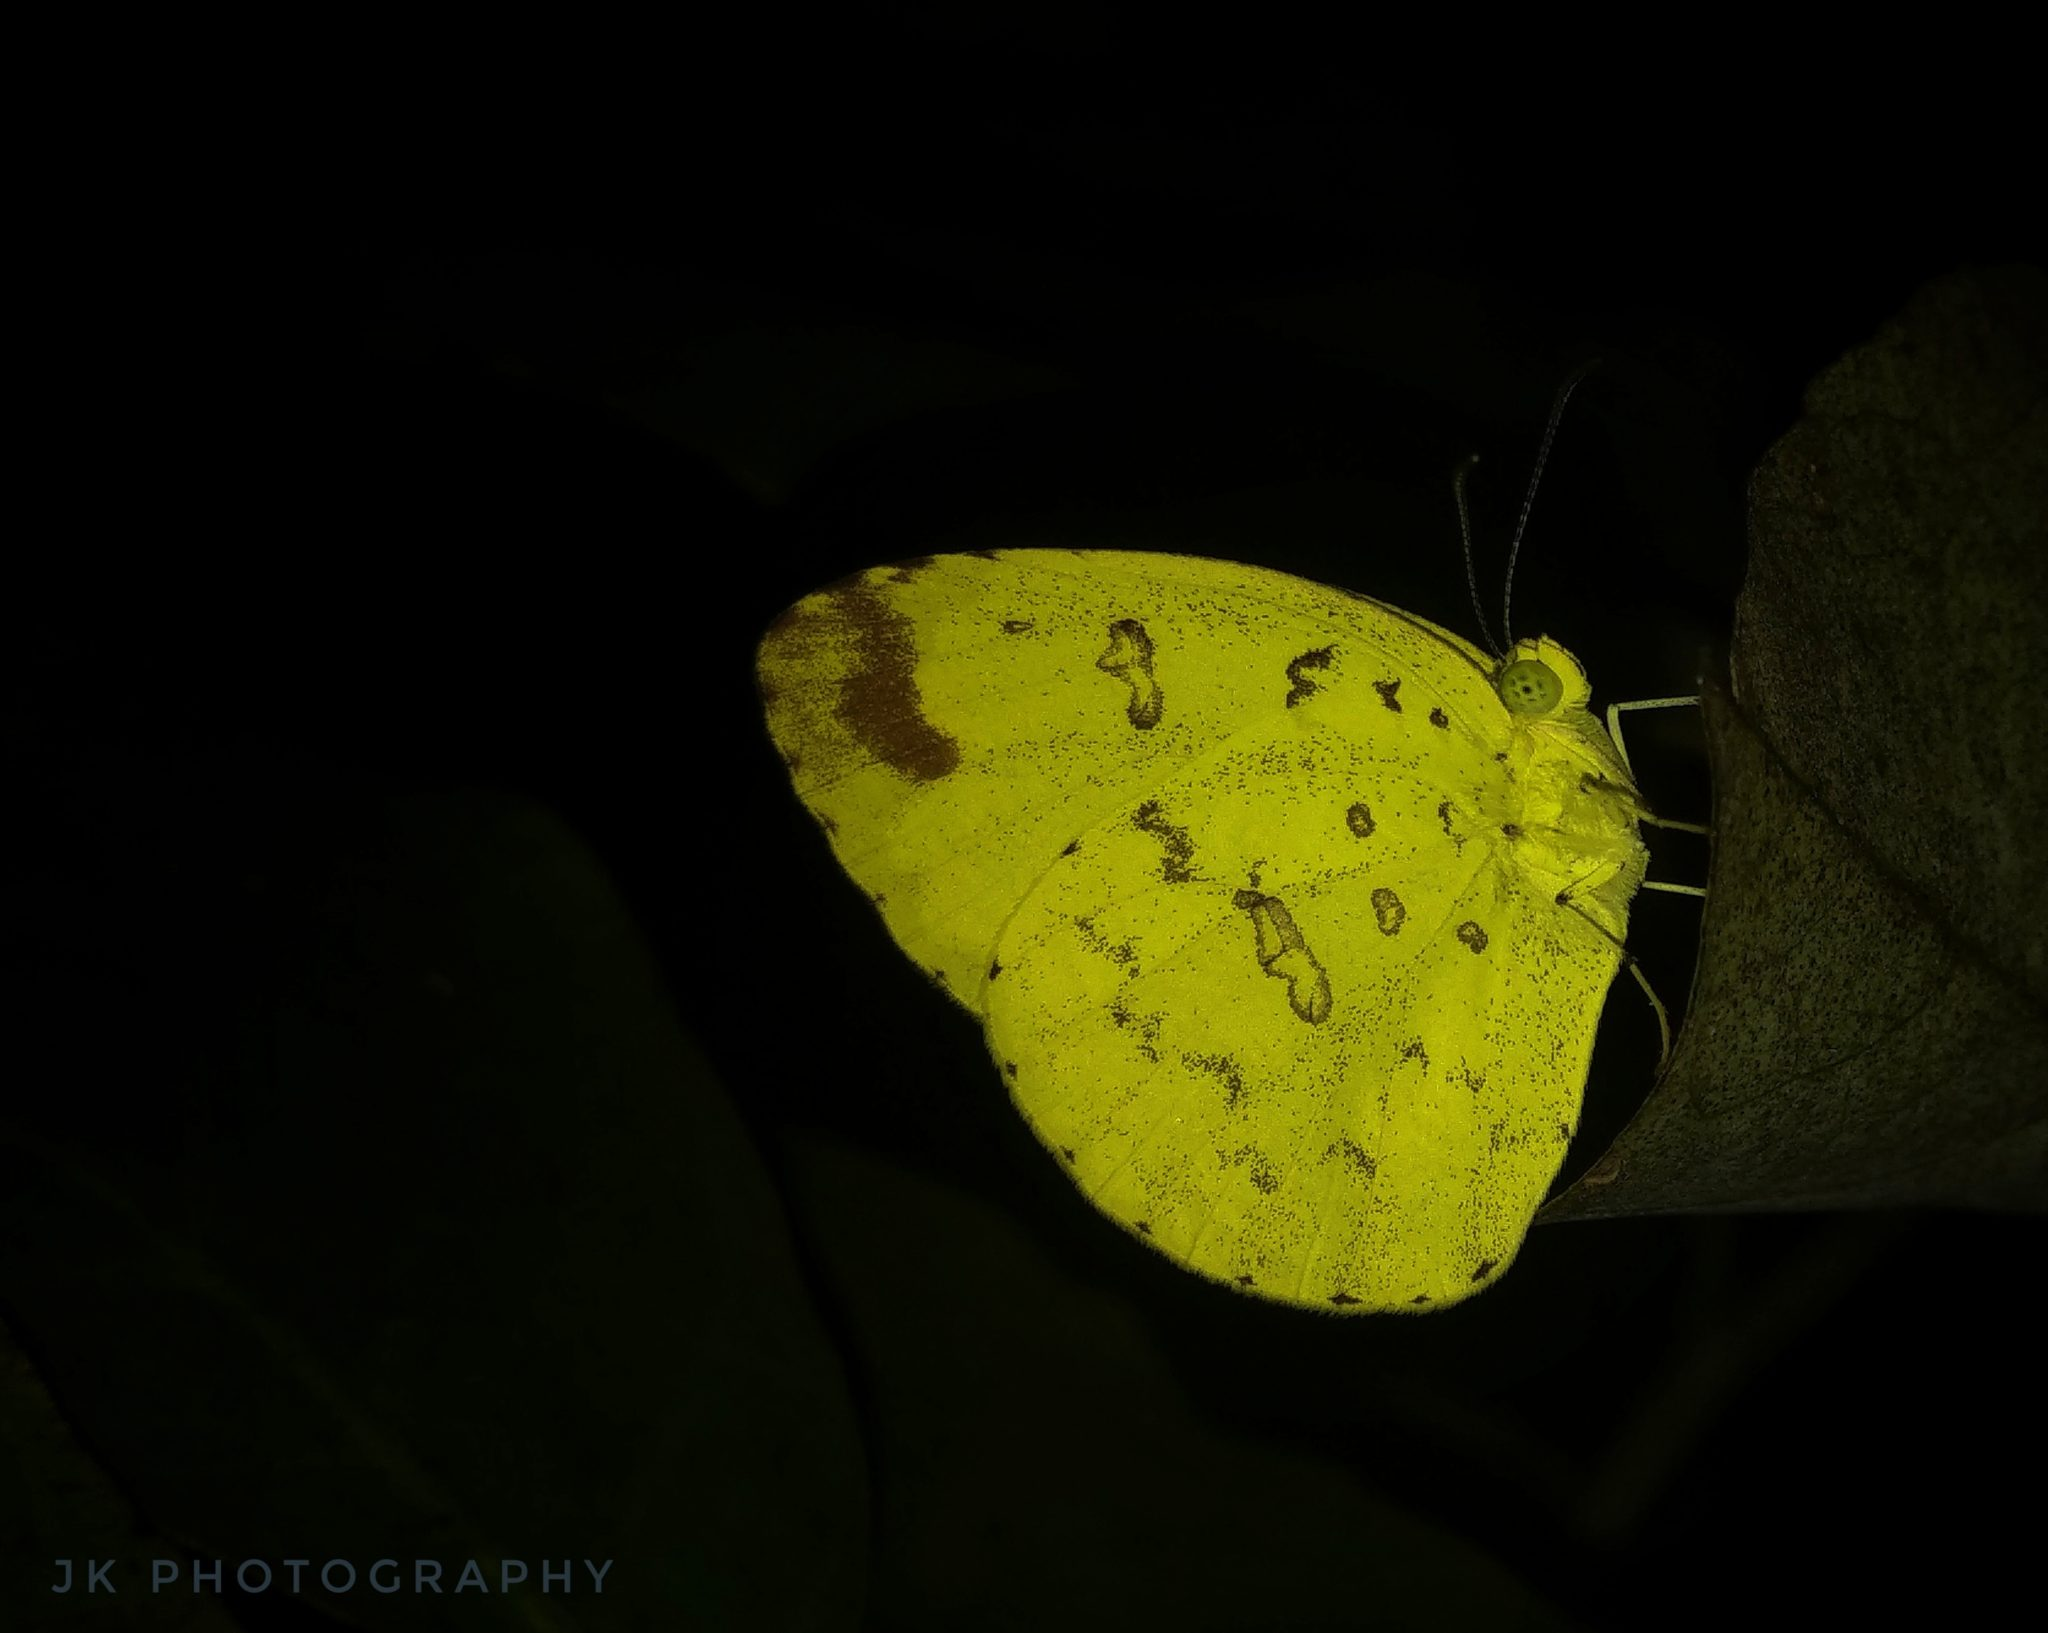 Common grass yellow (Eurema hecabe) Shoot On Mi A1 Stock Camera A bright yellow colored moth came to my sight when I was in my garden. It landed onto the bush plant of my garden. I got curious about its color which resulted in taking this picture. I used flashlight of my camera for a near to perfect capture.